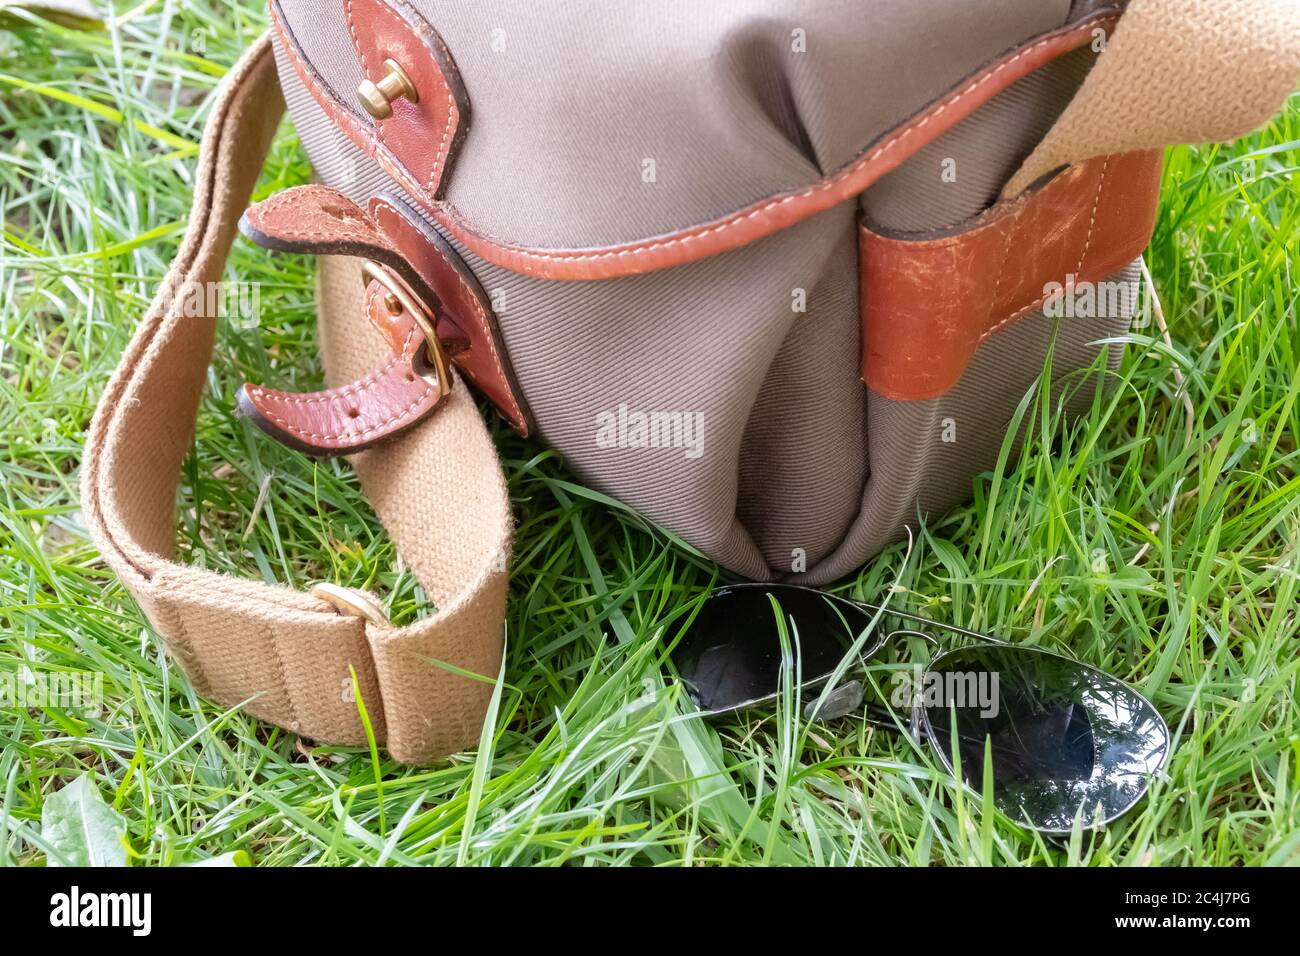 Pair of aviator style sunglasses seen laying on lush grass next to a canvas style camera bag. Stock Photo